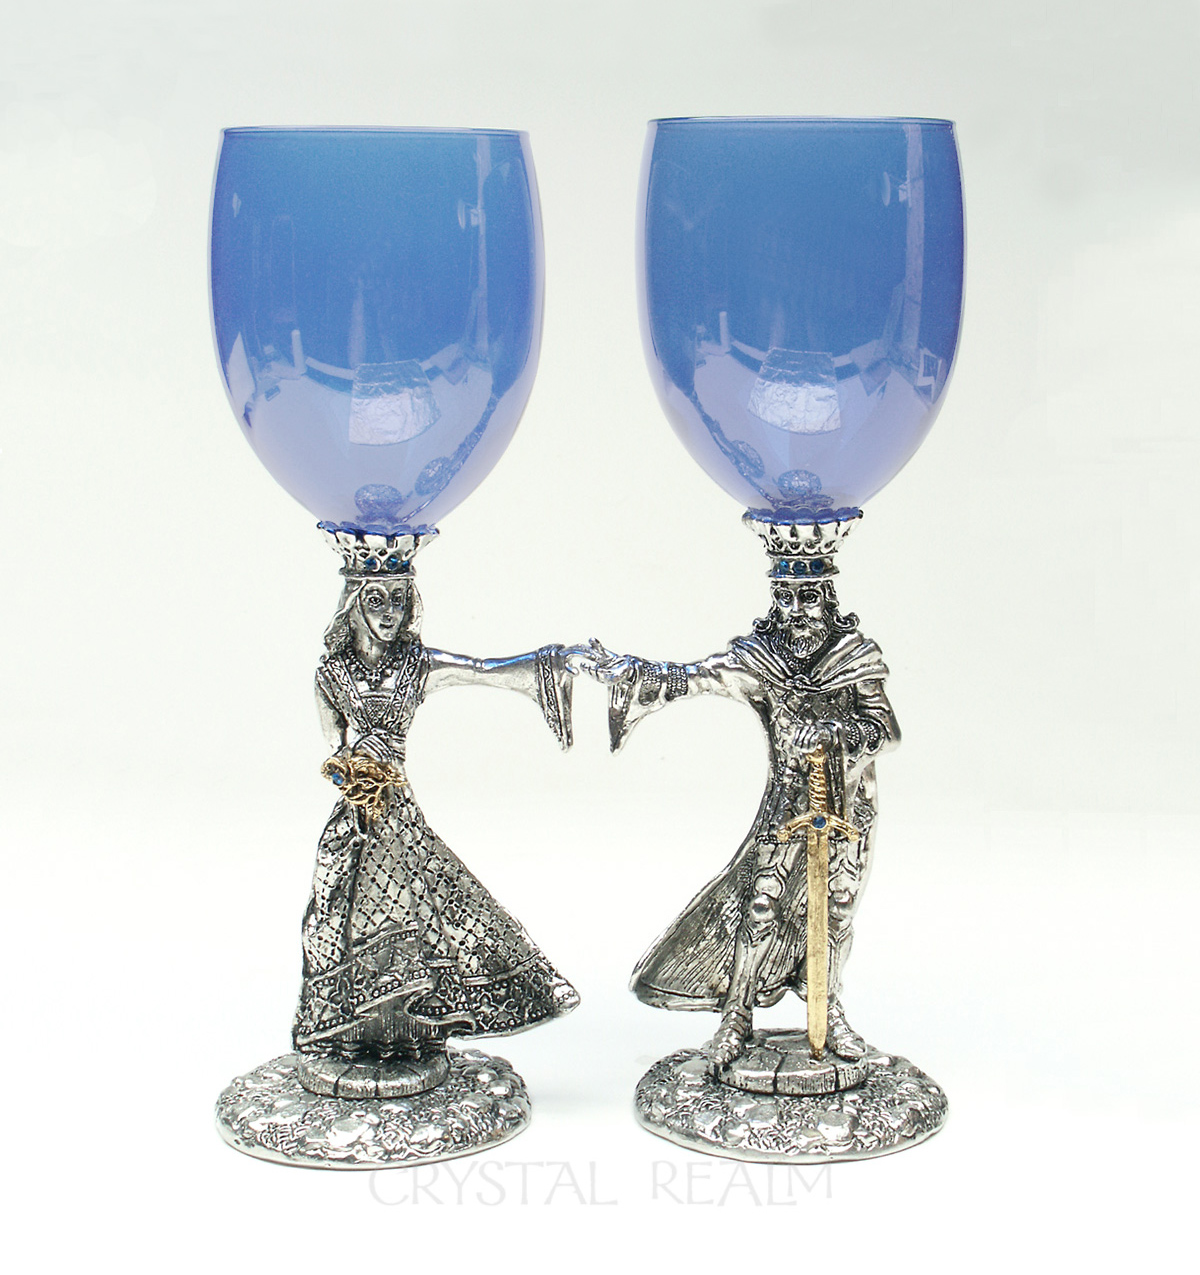 Arthur and Guinevere sapphire blue toasting glasses in pewter with 23k gold and austrian crystal trim